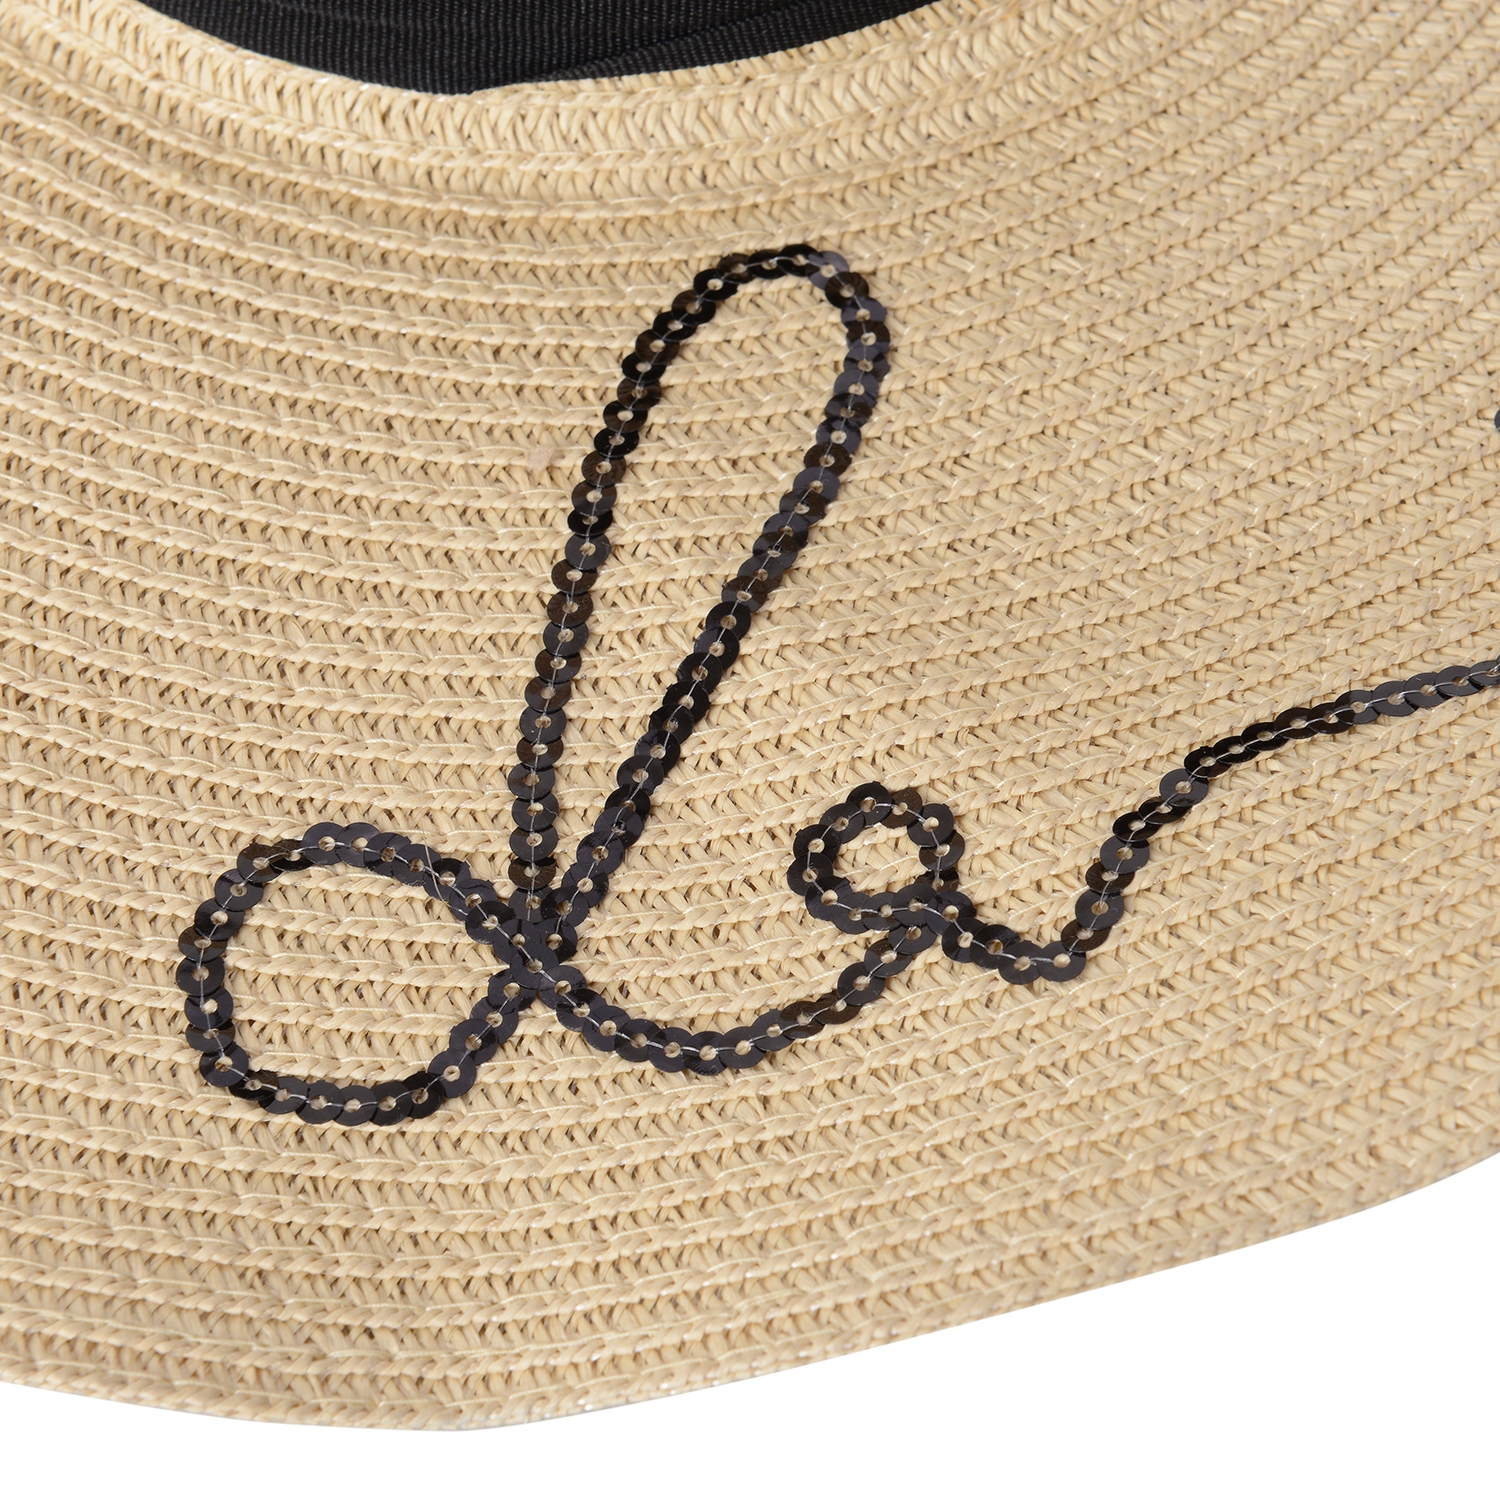 1a8870b2e5111 ... Off White 100% Straw Paper Embroidered Out of Office Sun Hat